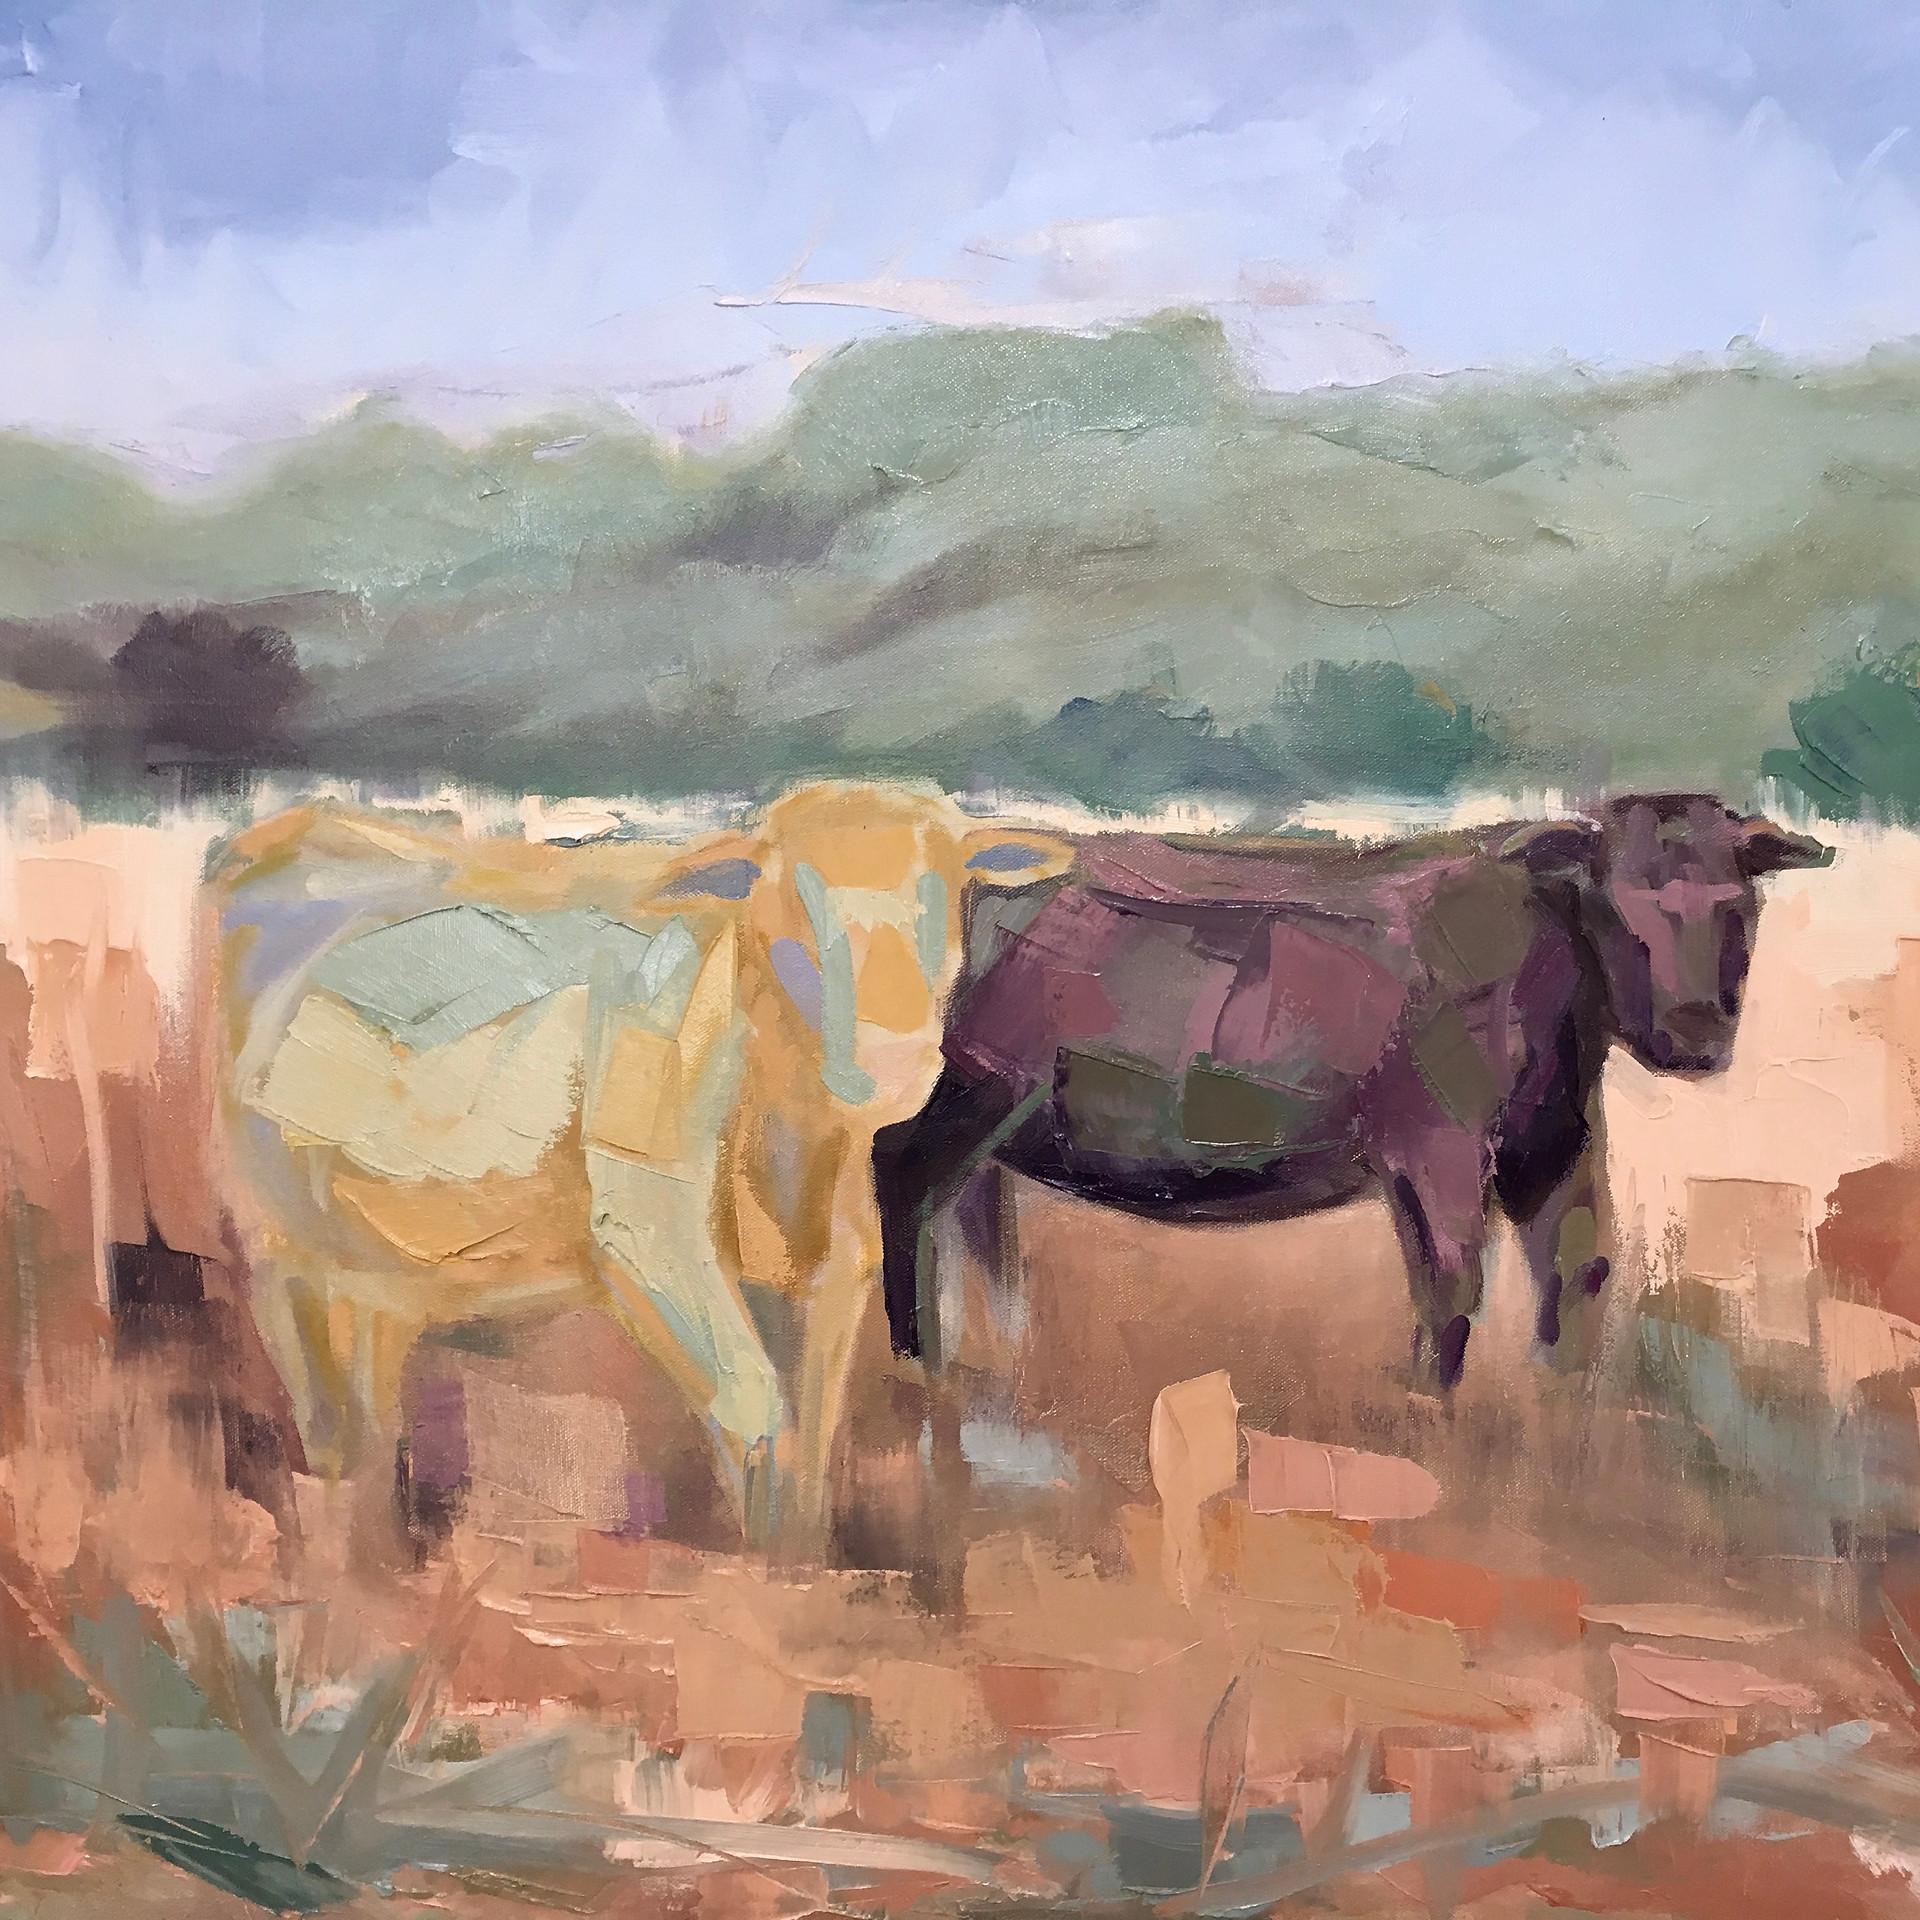 30 x 40 Oil on canvas  Private collection Mill Valley, CA